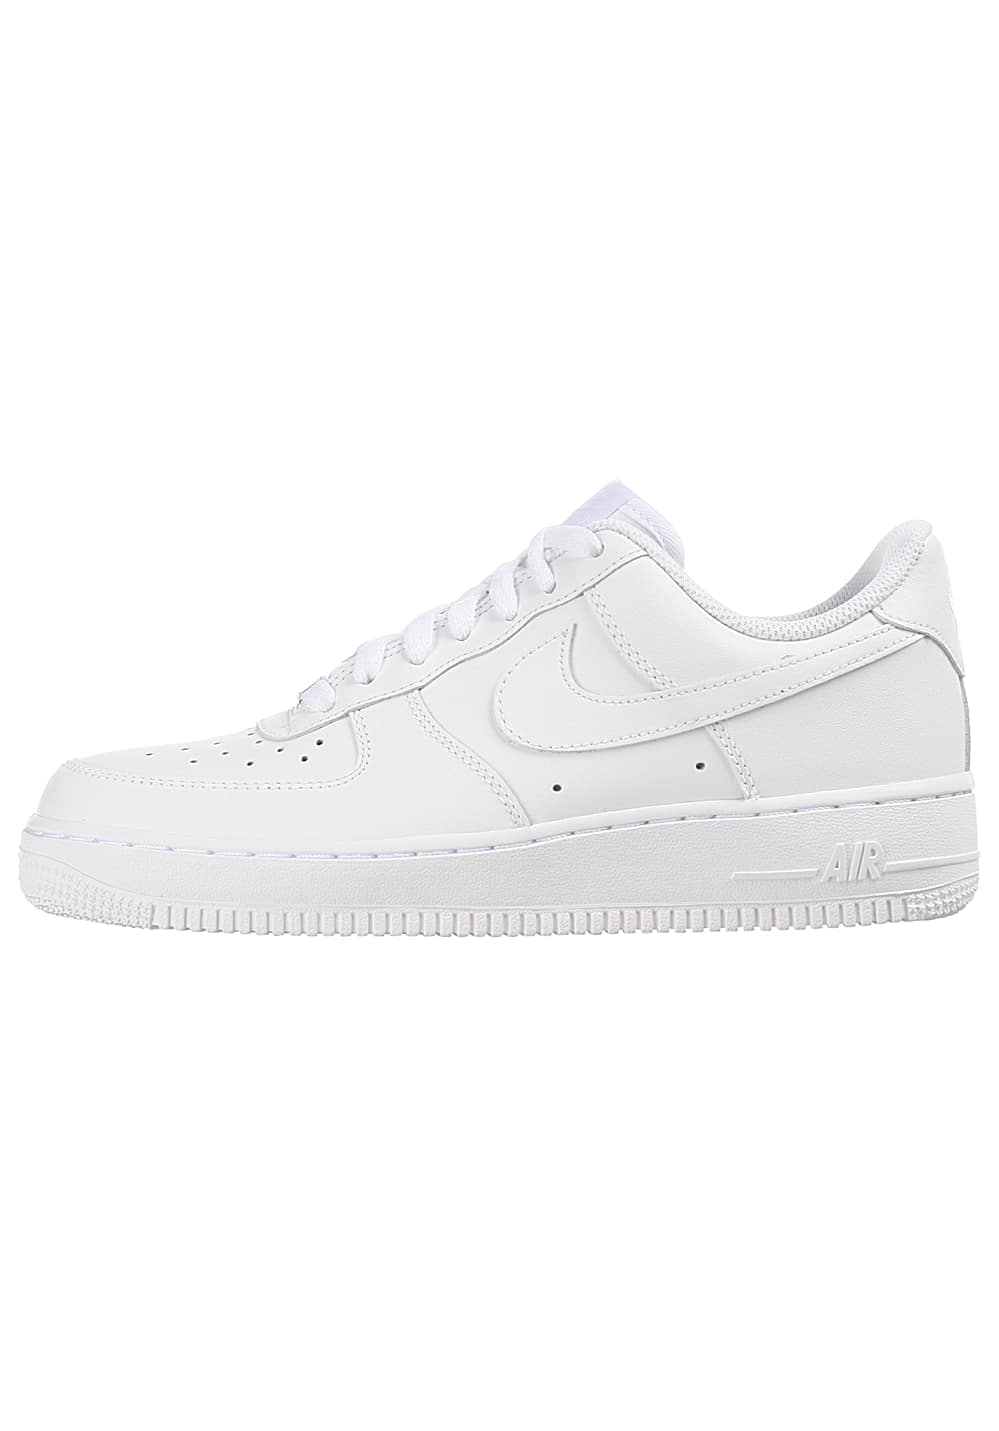 Nike Sportswear Air Force 1 '07 Sneaker für Damen Weiß